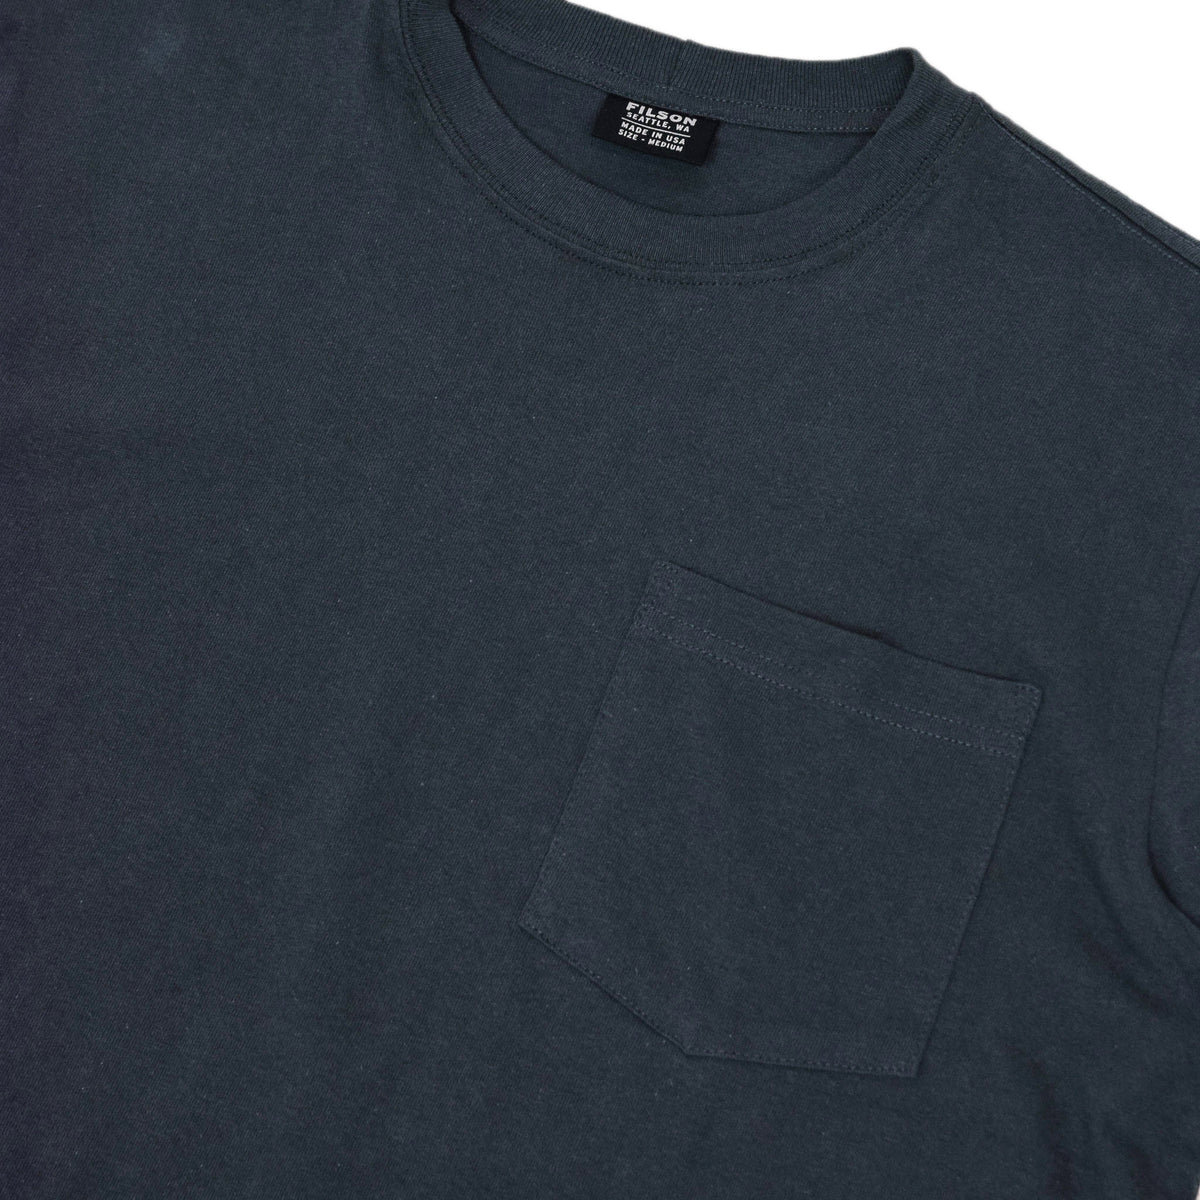 Filson Short Sleeve Outfitter One Pocket T-Shirt Ink Blue chest